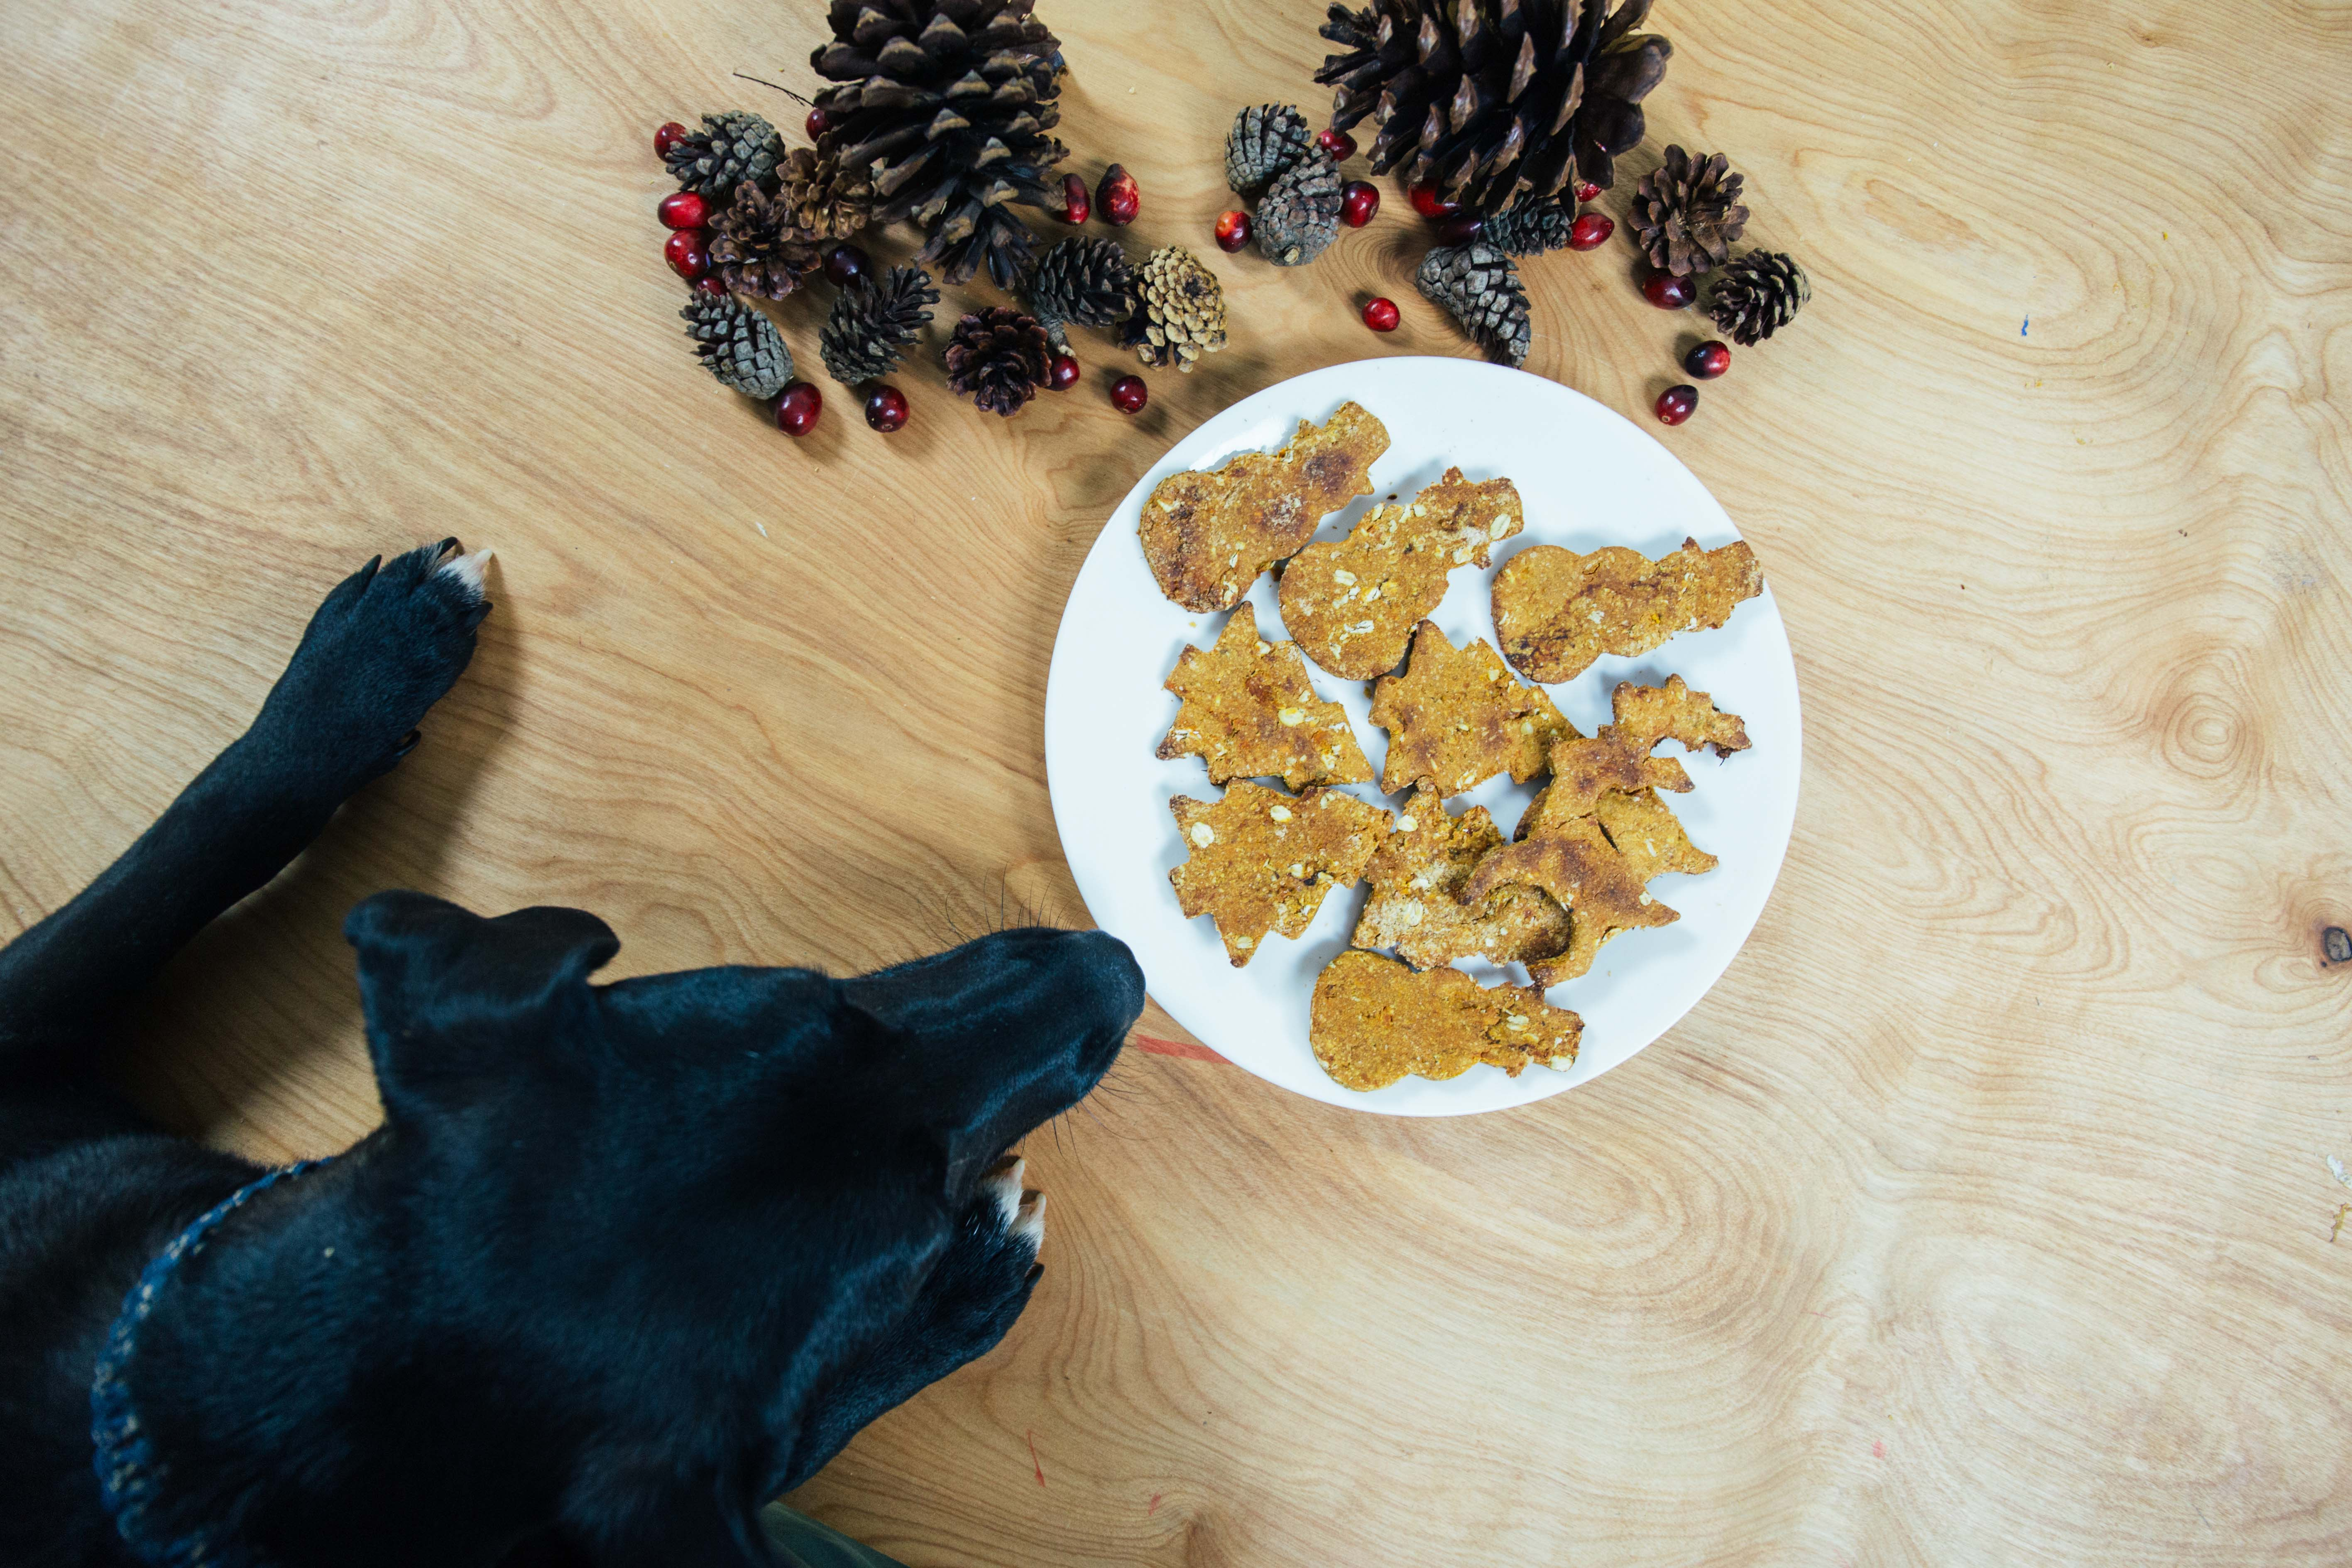 Ollie Knows: How to Make a Healthy Holiday Pup Treat